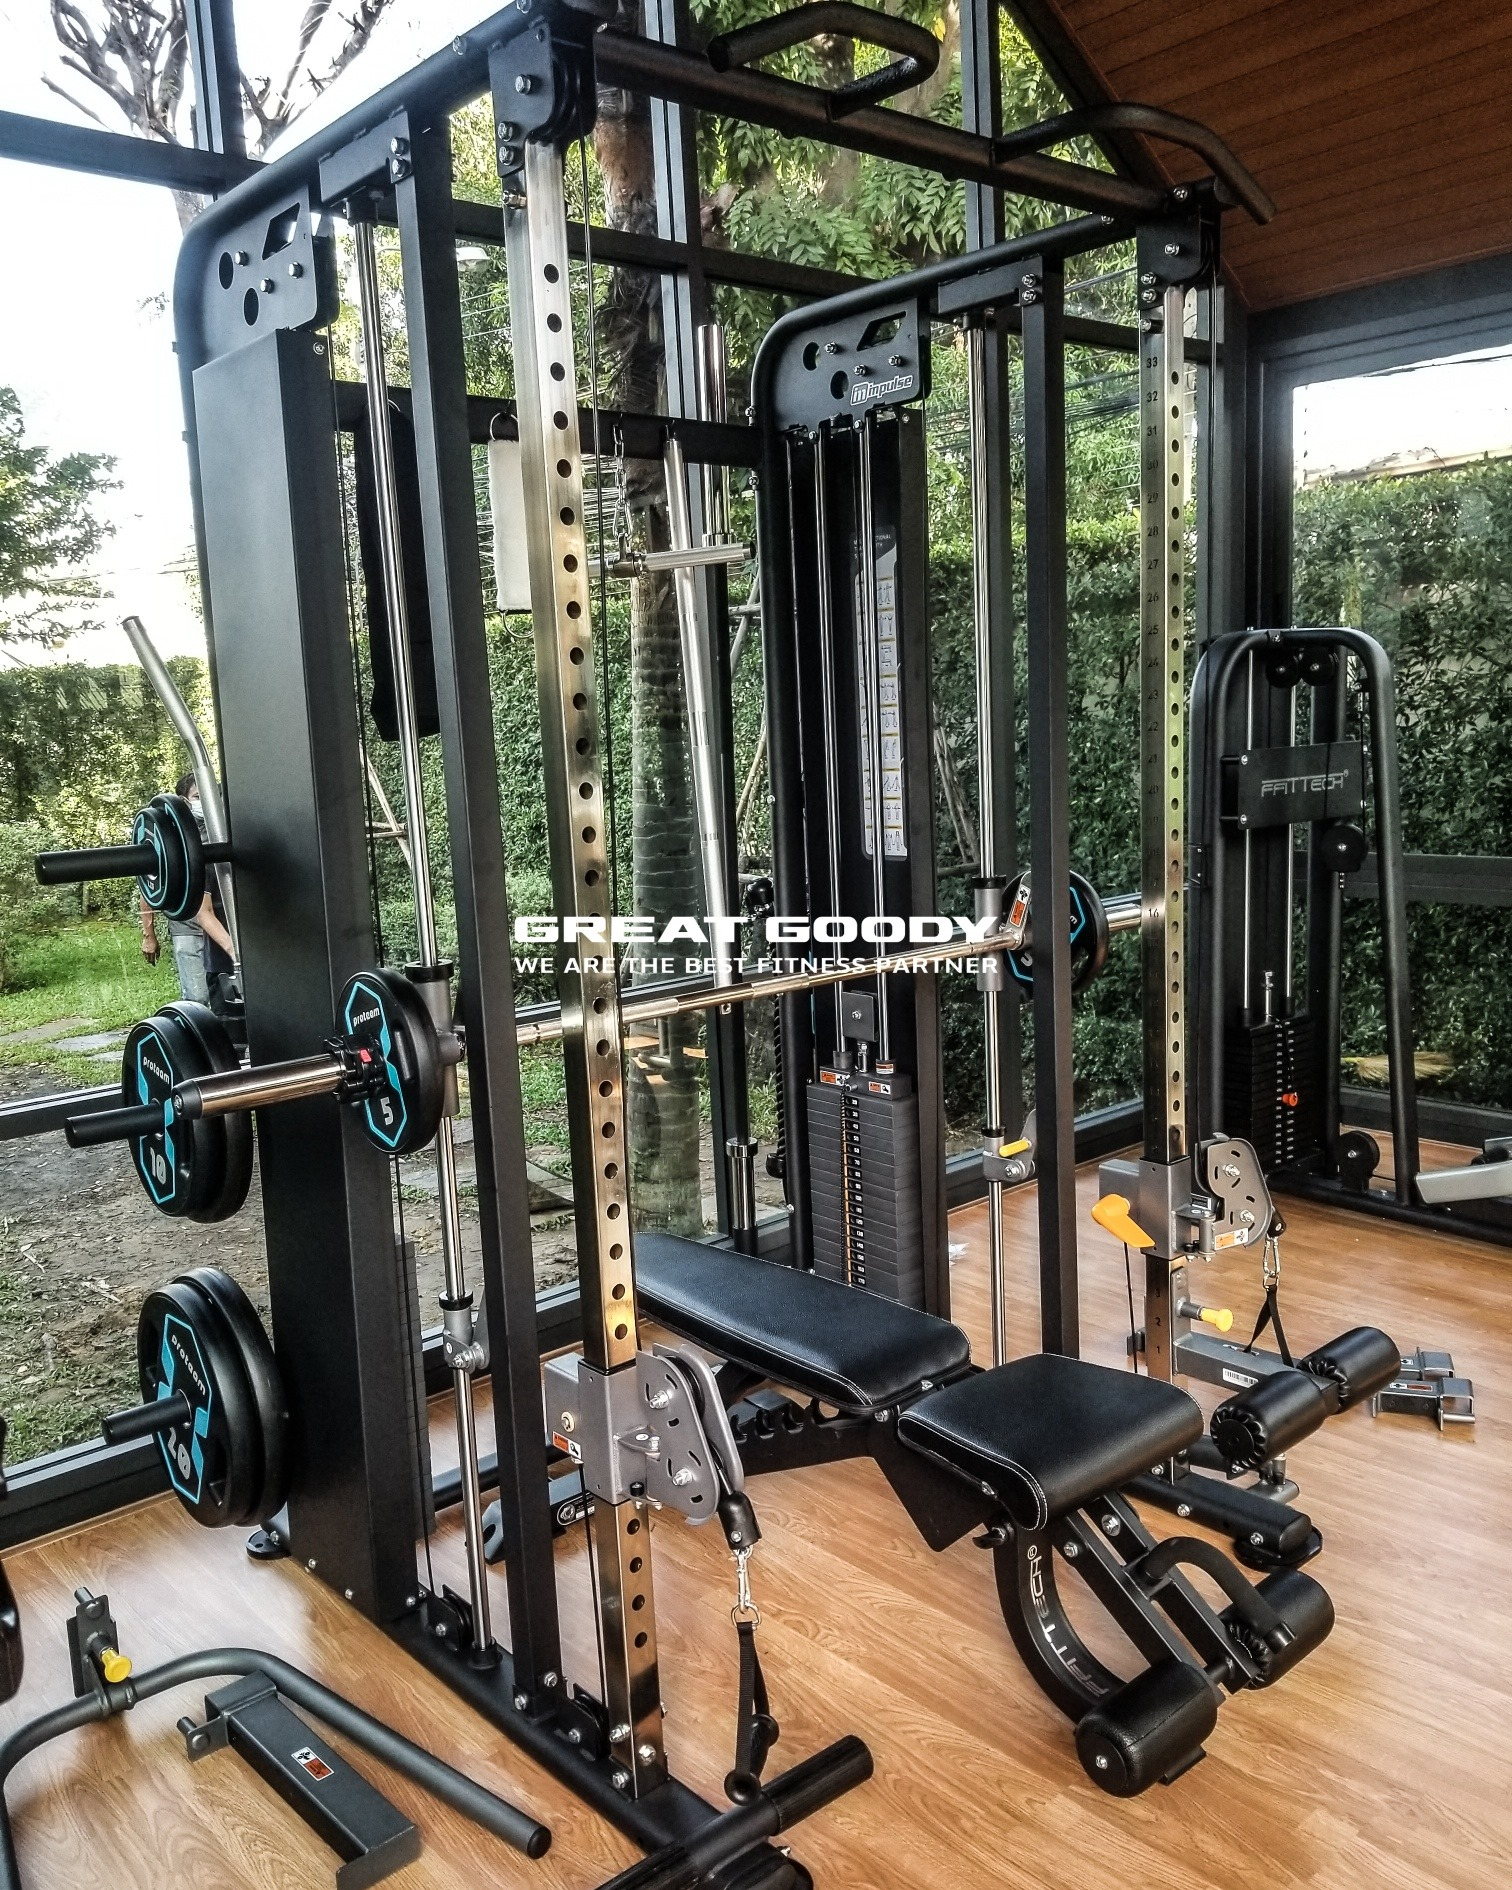 ES2100 Multi-Functional Trainer with Smith -> Multi-Functional Dual Pulley + Selectorized  Hard chrome plated guide rod  Cable transmission ratio 1:2,  maximum stroke 2314mm    หมายเหตุ : ข้อมูลทั้งหมดอาจมีการเปลี่ยนแปลงจากผู้ผลิต